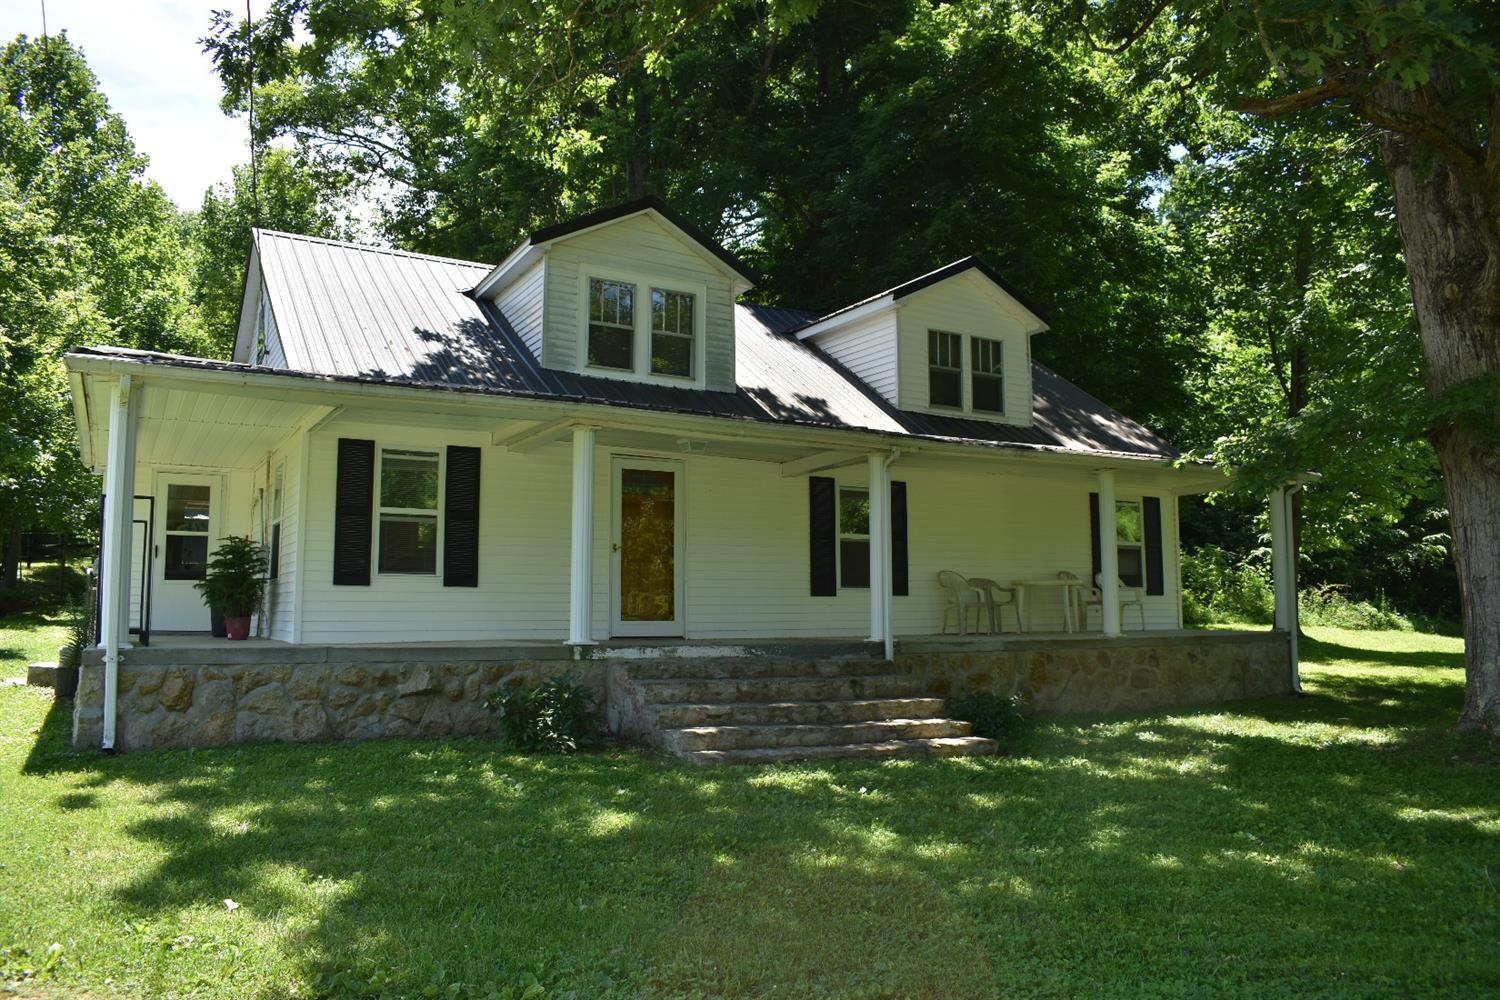 Look%20at%20this%20Beautiful%20secluded%20home%20that%20sits%20on%2057%20Acres%20just%20minutes%20from%20Danville!%20This%20scenic%20property%20features%20a%20well%20kept%20farm%20house%20as%20well%20as%20a%20large%20barn%20with%20stalls%20for%20your%20animals.%20The%20land%20offers%20a%20variety%20of%20woods%20and%20pasture%20areas.%20Several%20large%20fenced%20paddocks%20with%20run%20in%20sheds,%20a%20natural%20spring%20in%20spring%20house,%20small%20green%20house%20structure%20and%20a%20creek%20that%20runs%20across%20the%20front%20of%20the%20property.%20Take%20a%20hike%20or%20your%20ATV%20up%20the%20trail%20to%20the%20top%20of%20the%20knob%20and%20see%20a%20large%20field%20currently%20being%20used%20for%20hay.%20Its%20a%20beautiful%20open%20field%20on%20the%20top%20with%20wonderful%20views.%20Would%20be%20a%20great%20recreation%20site...the%20possibilities%20are%20endless.